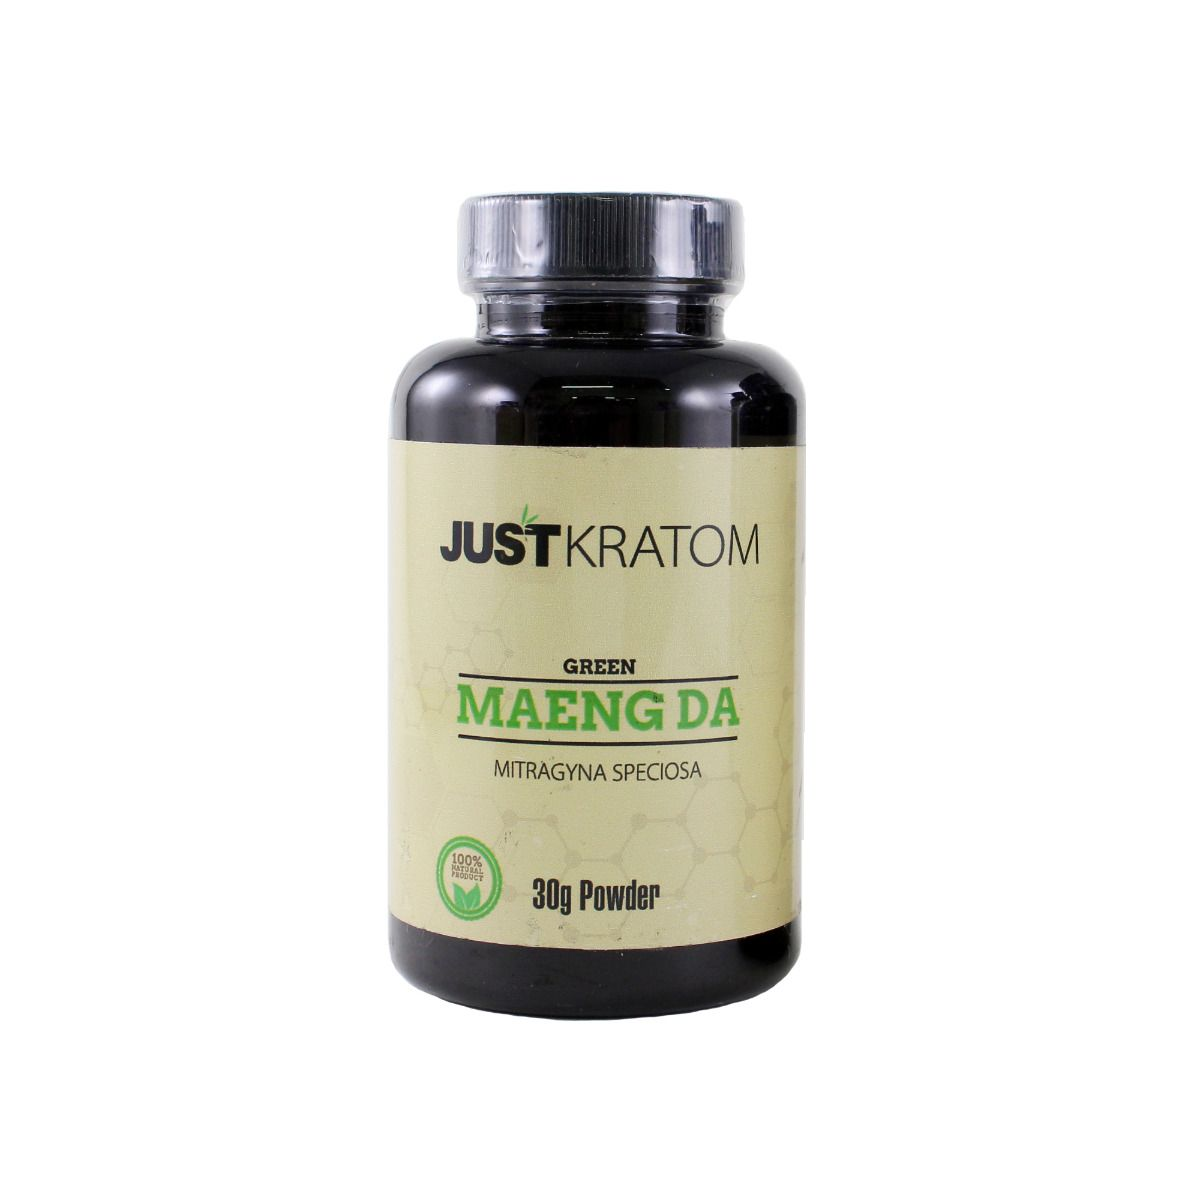 JUST KRATOM - GREEN MAENG DA Powder